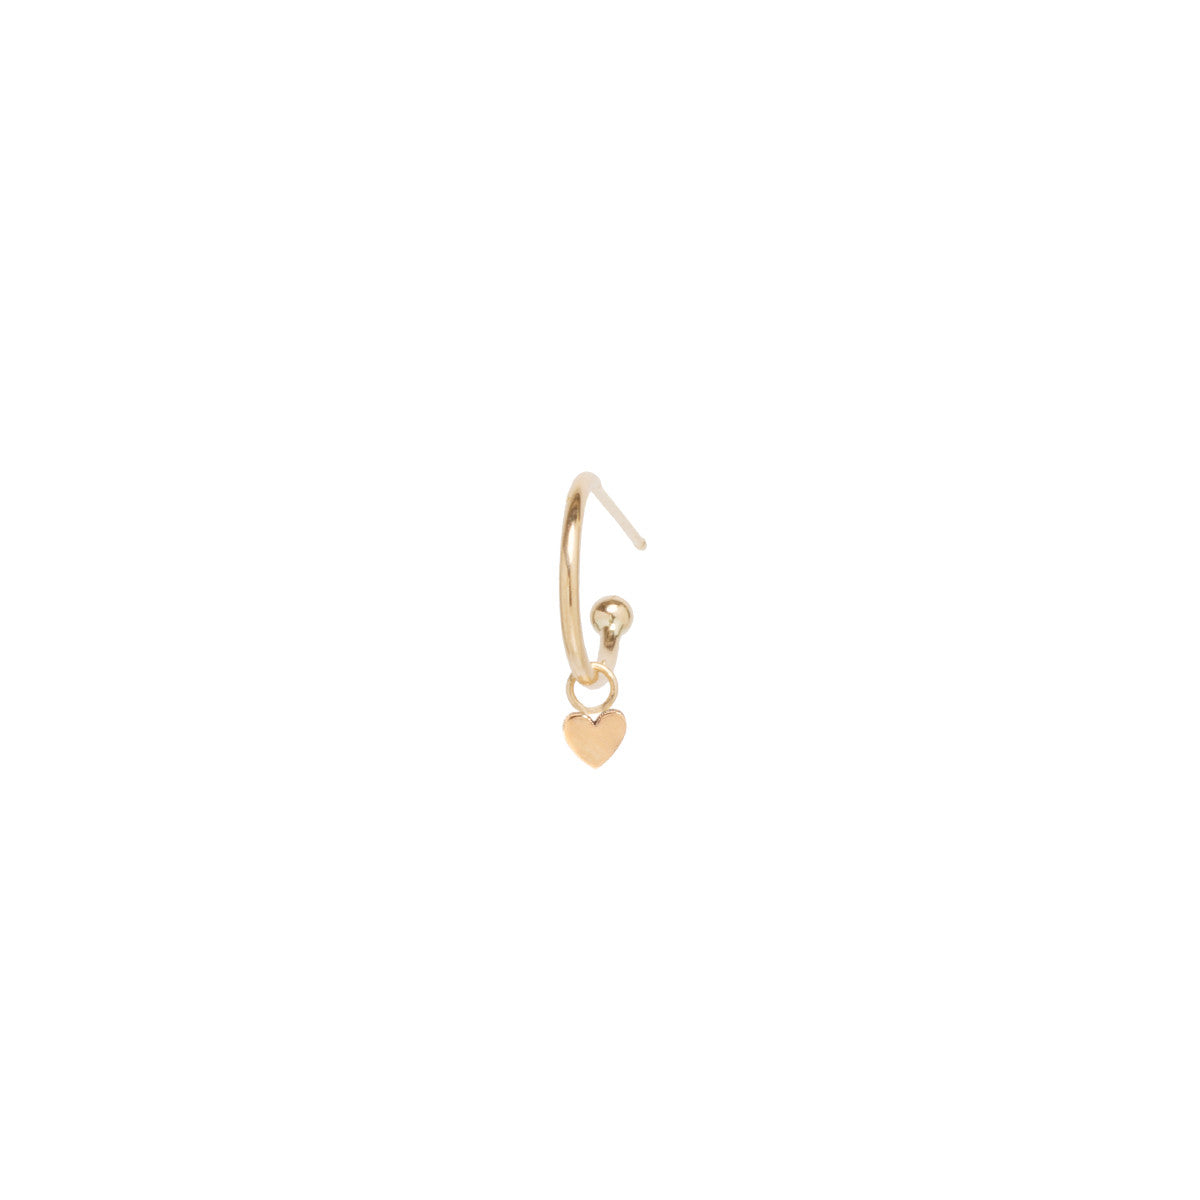 Zoë Chicco 14kt Yellow Gold Dangle Itty Bitty Heart Charm Huggie Hoop